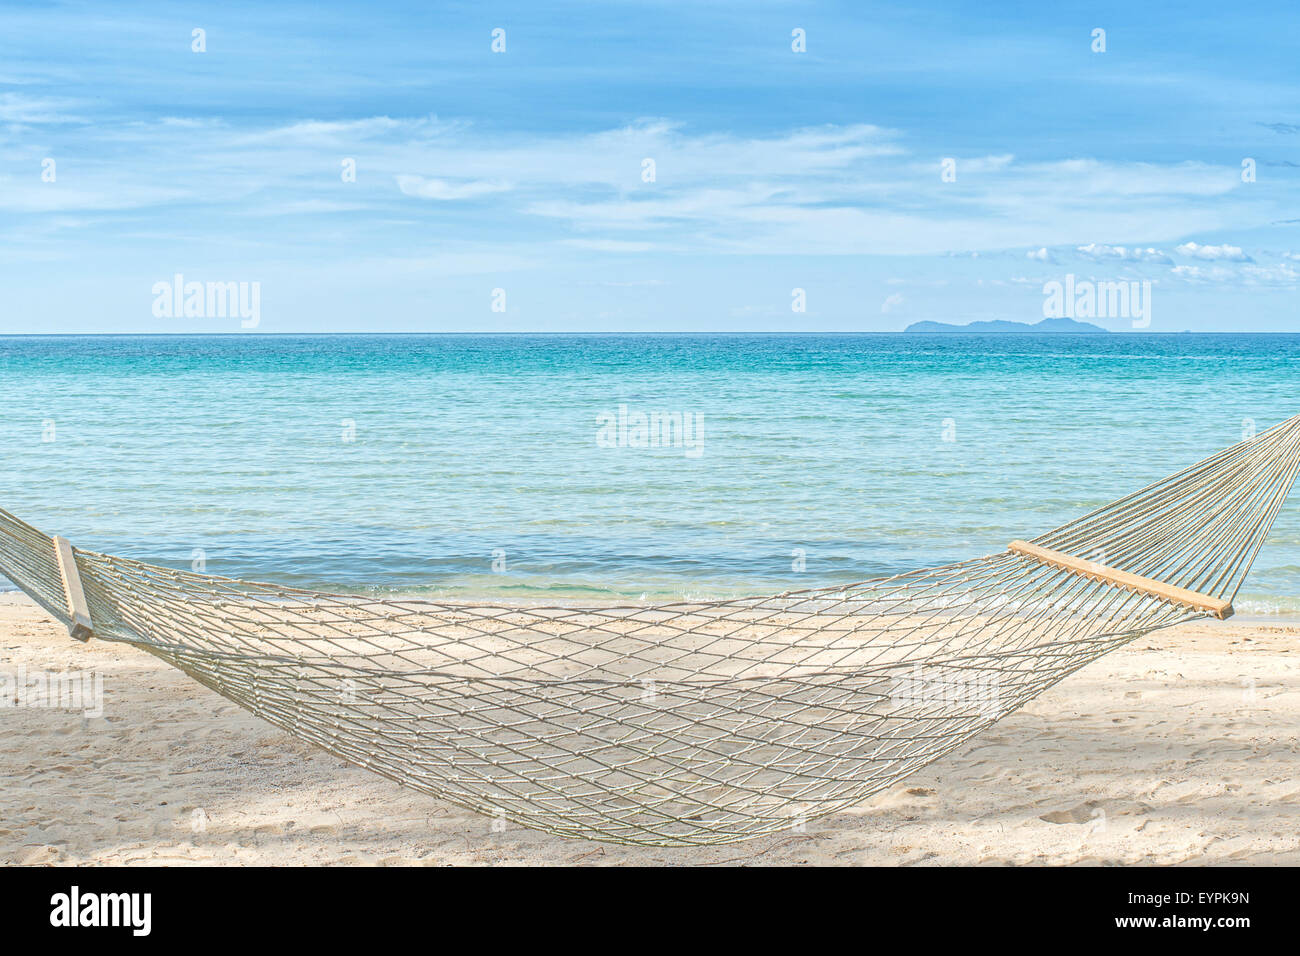 f12d360ea79 Empty Hammock Stock Photos   Empty Hammock Stock Images - Alamy